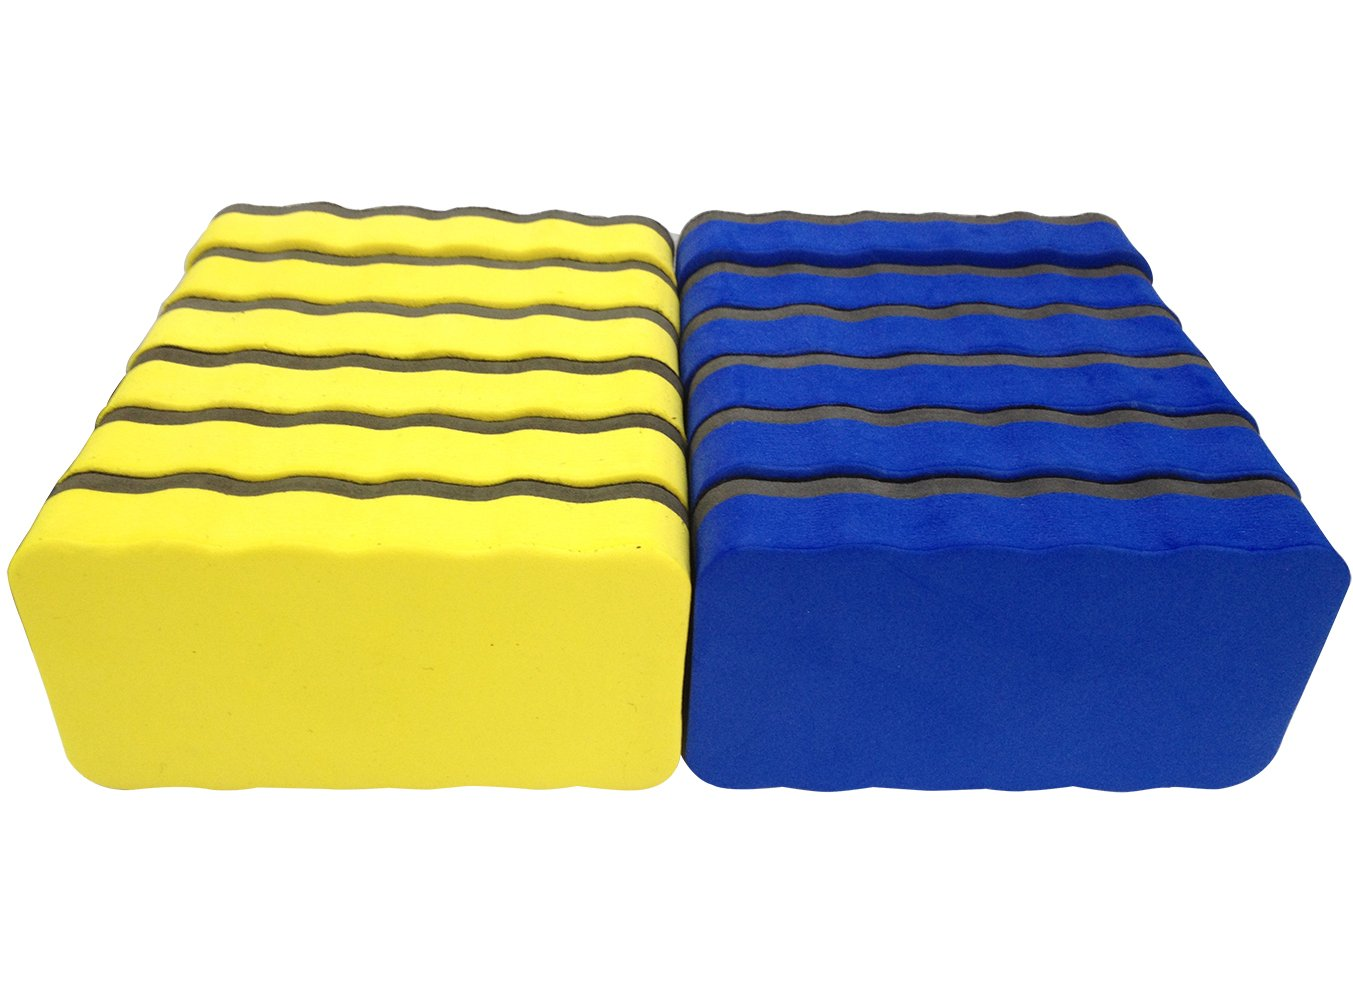 Attmu Magnetic Whiteboard Dry Erasers, 12 Pack - 6 Blue and 6 Yellow, 2.2 x 4 Inches Each by Attmu (Image #5)